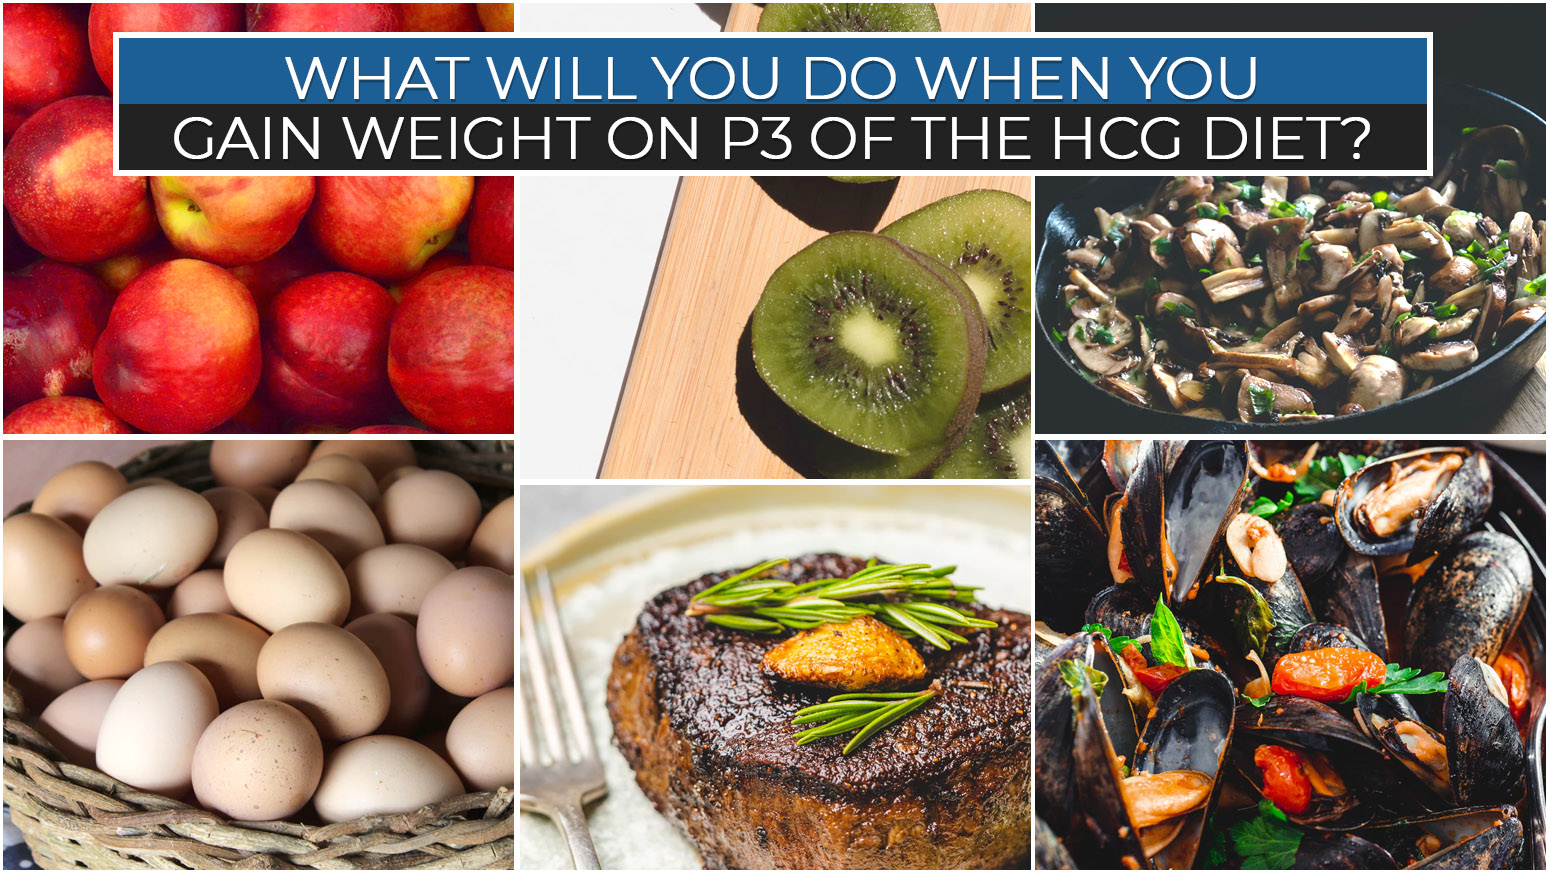 WHAT WILL YOU DO WHEN YOU GAIN WEIGHT ON P3 OF THE HCG DIET